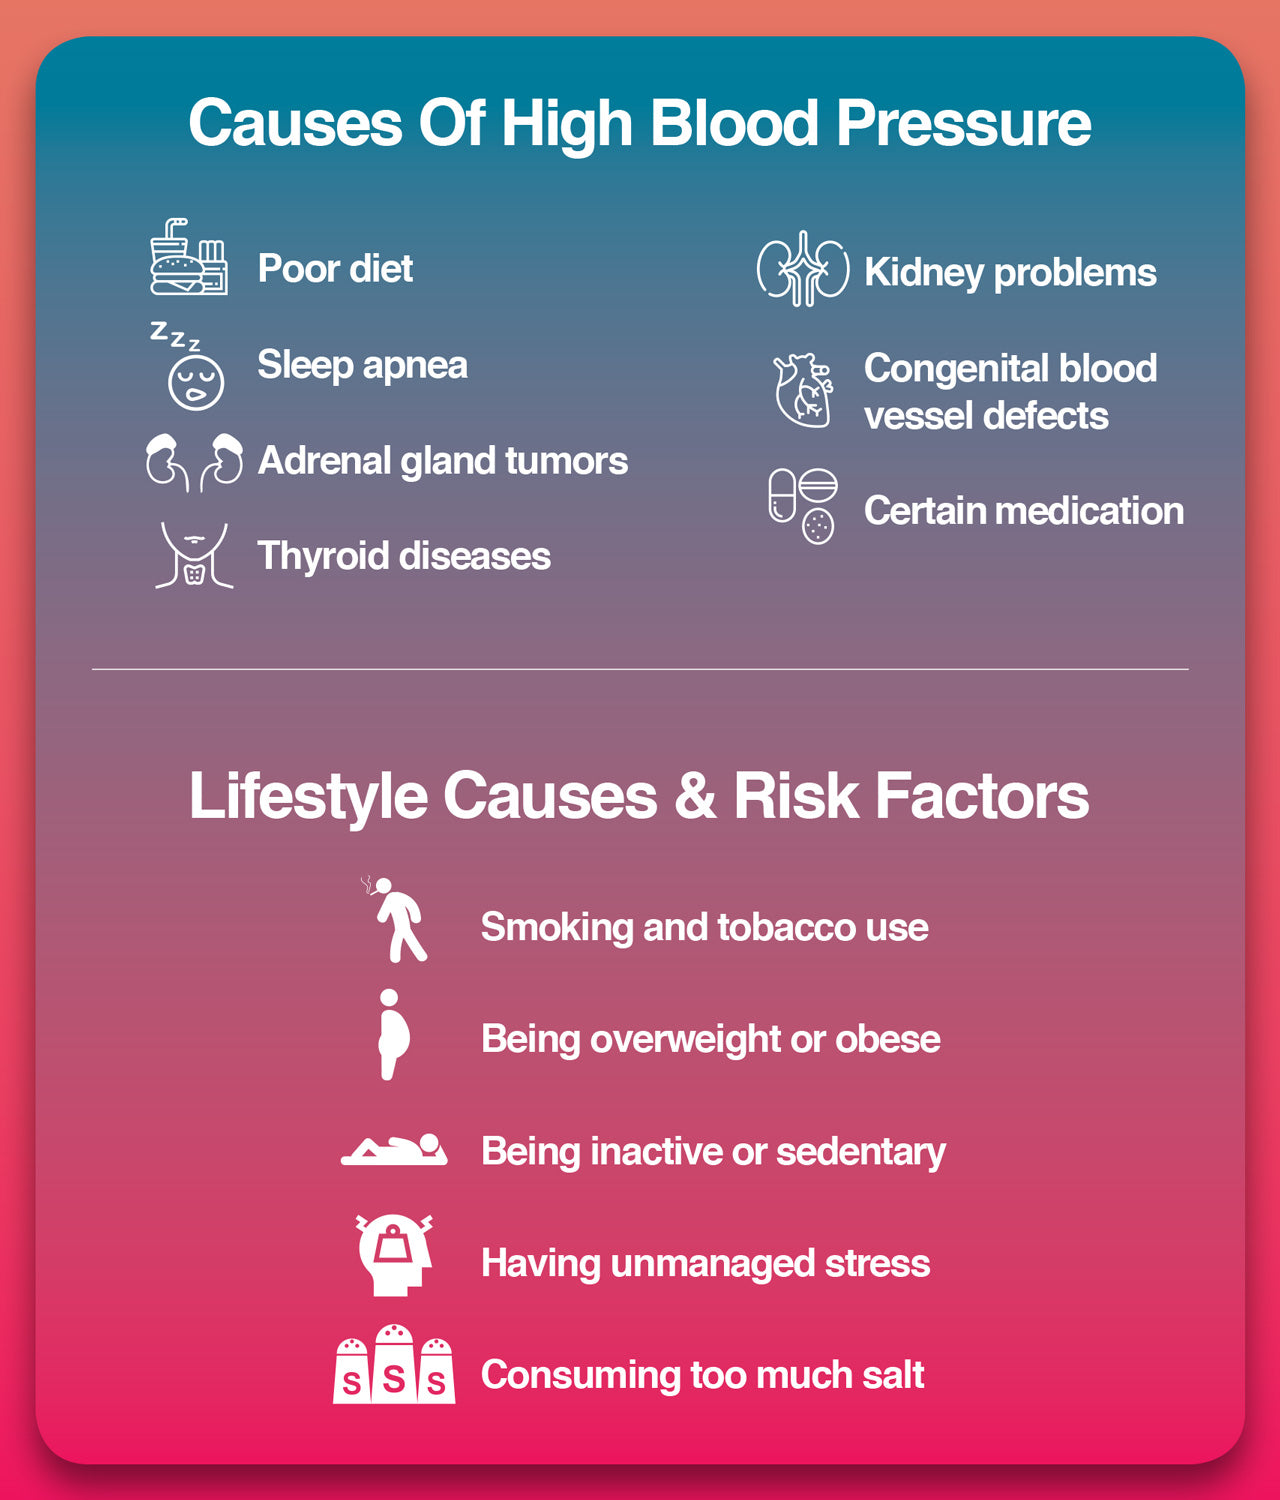 Here are the causes of high blood pressure.